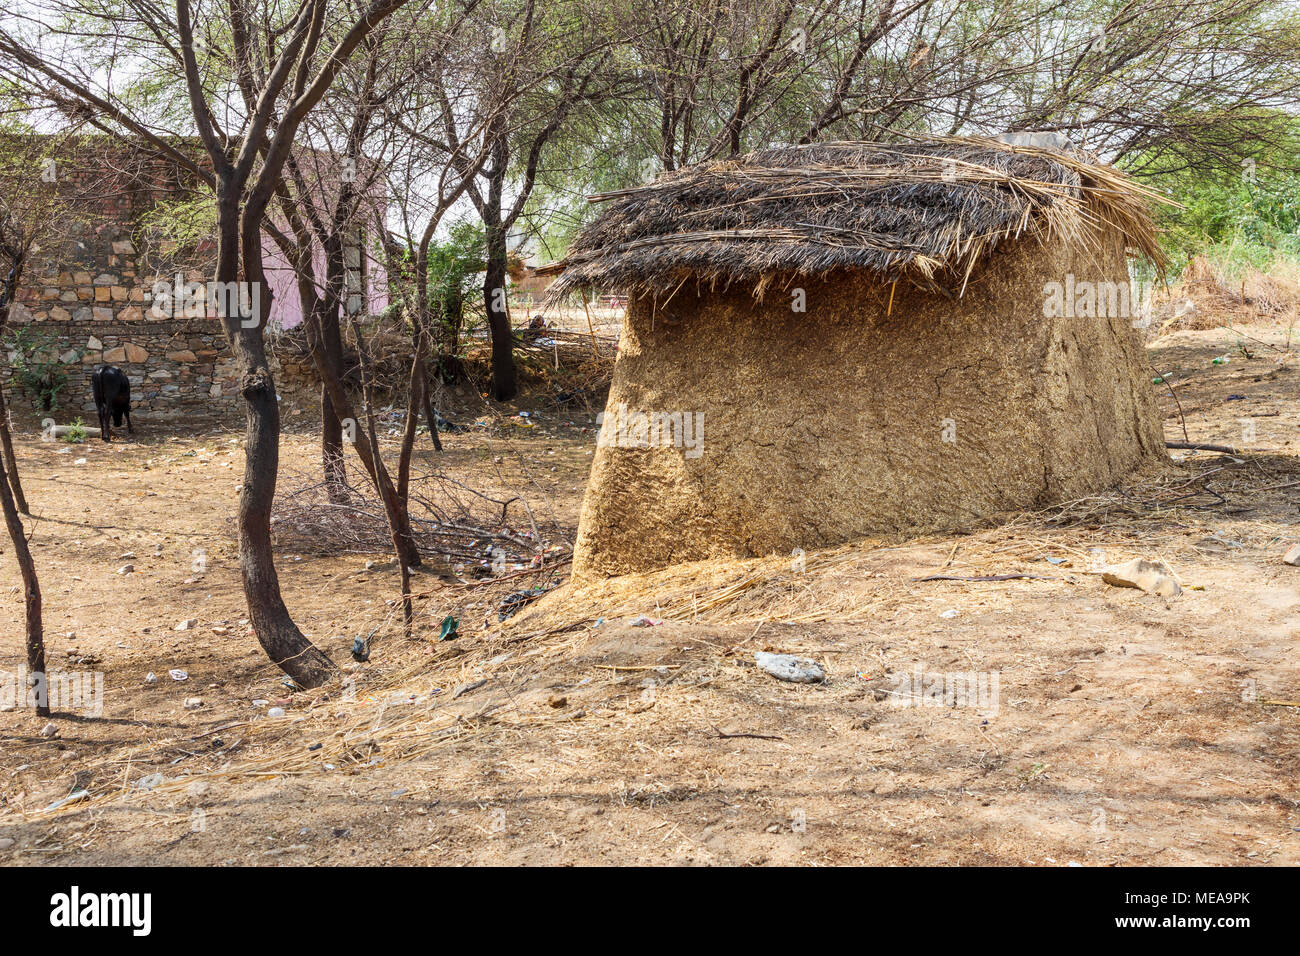 Traditional farming methods: view of typical roadside structure made of dried cow dung stored to be used for fuel, near Dausa, Rajasthan, north India Stock Photo